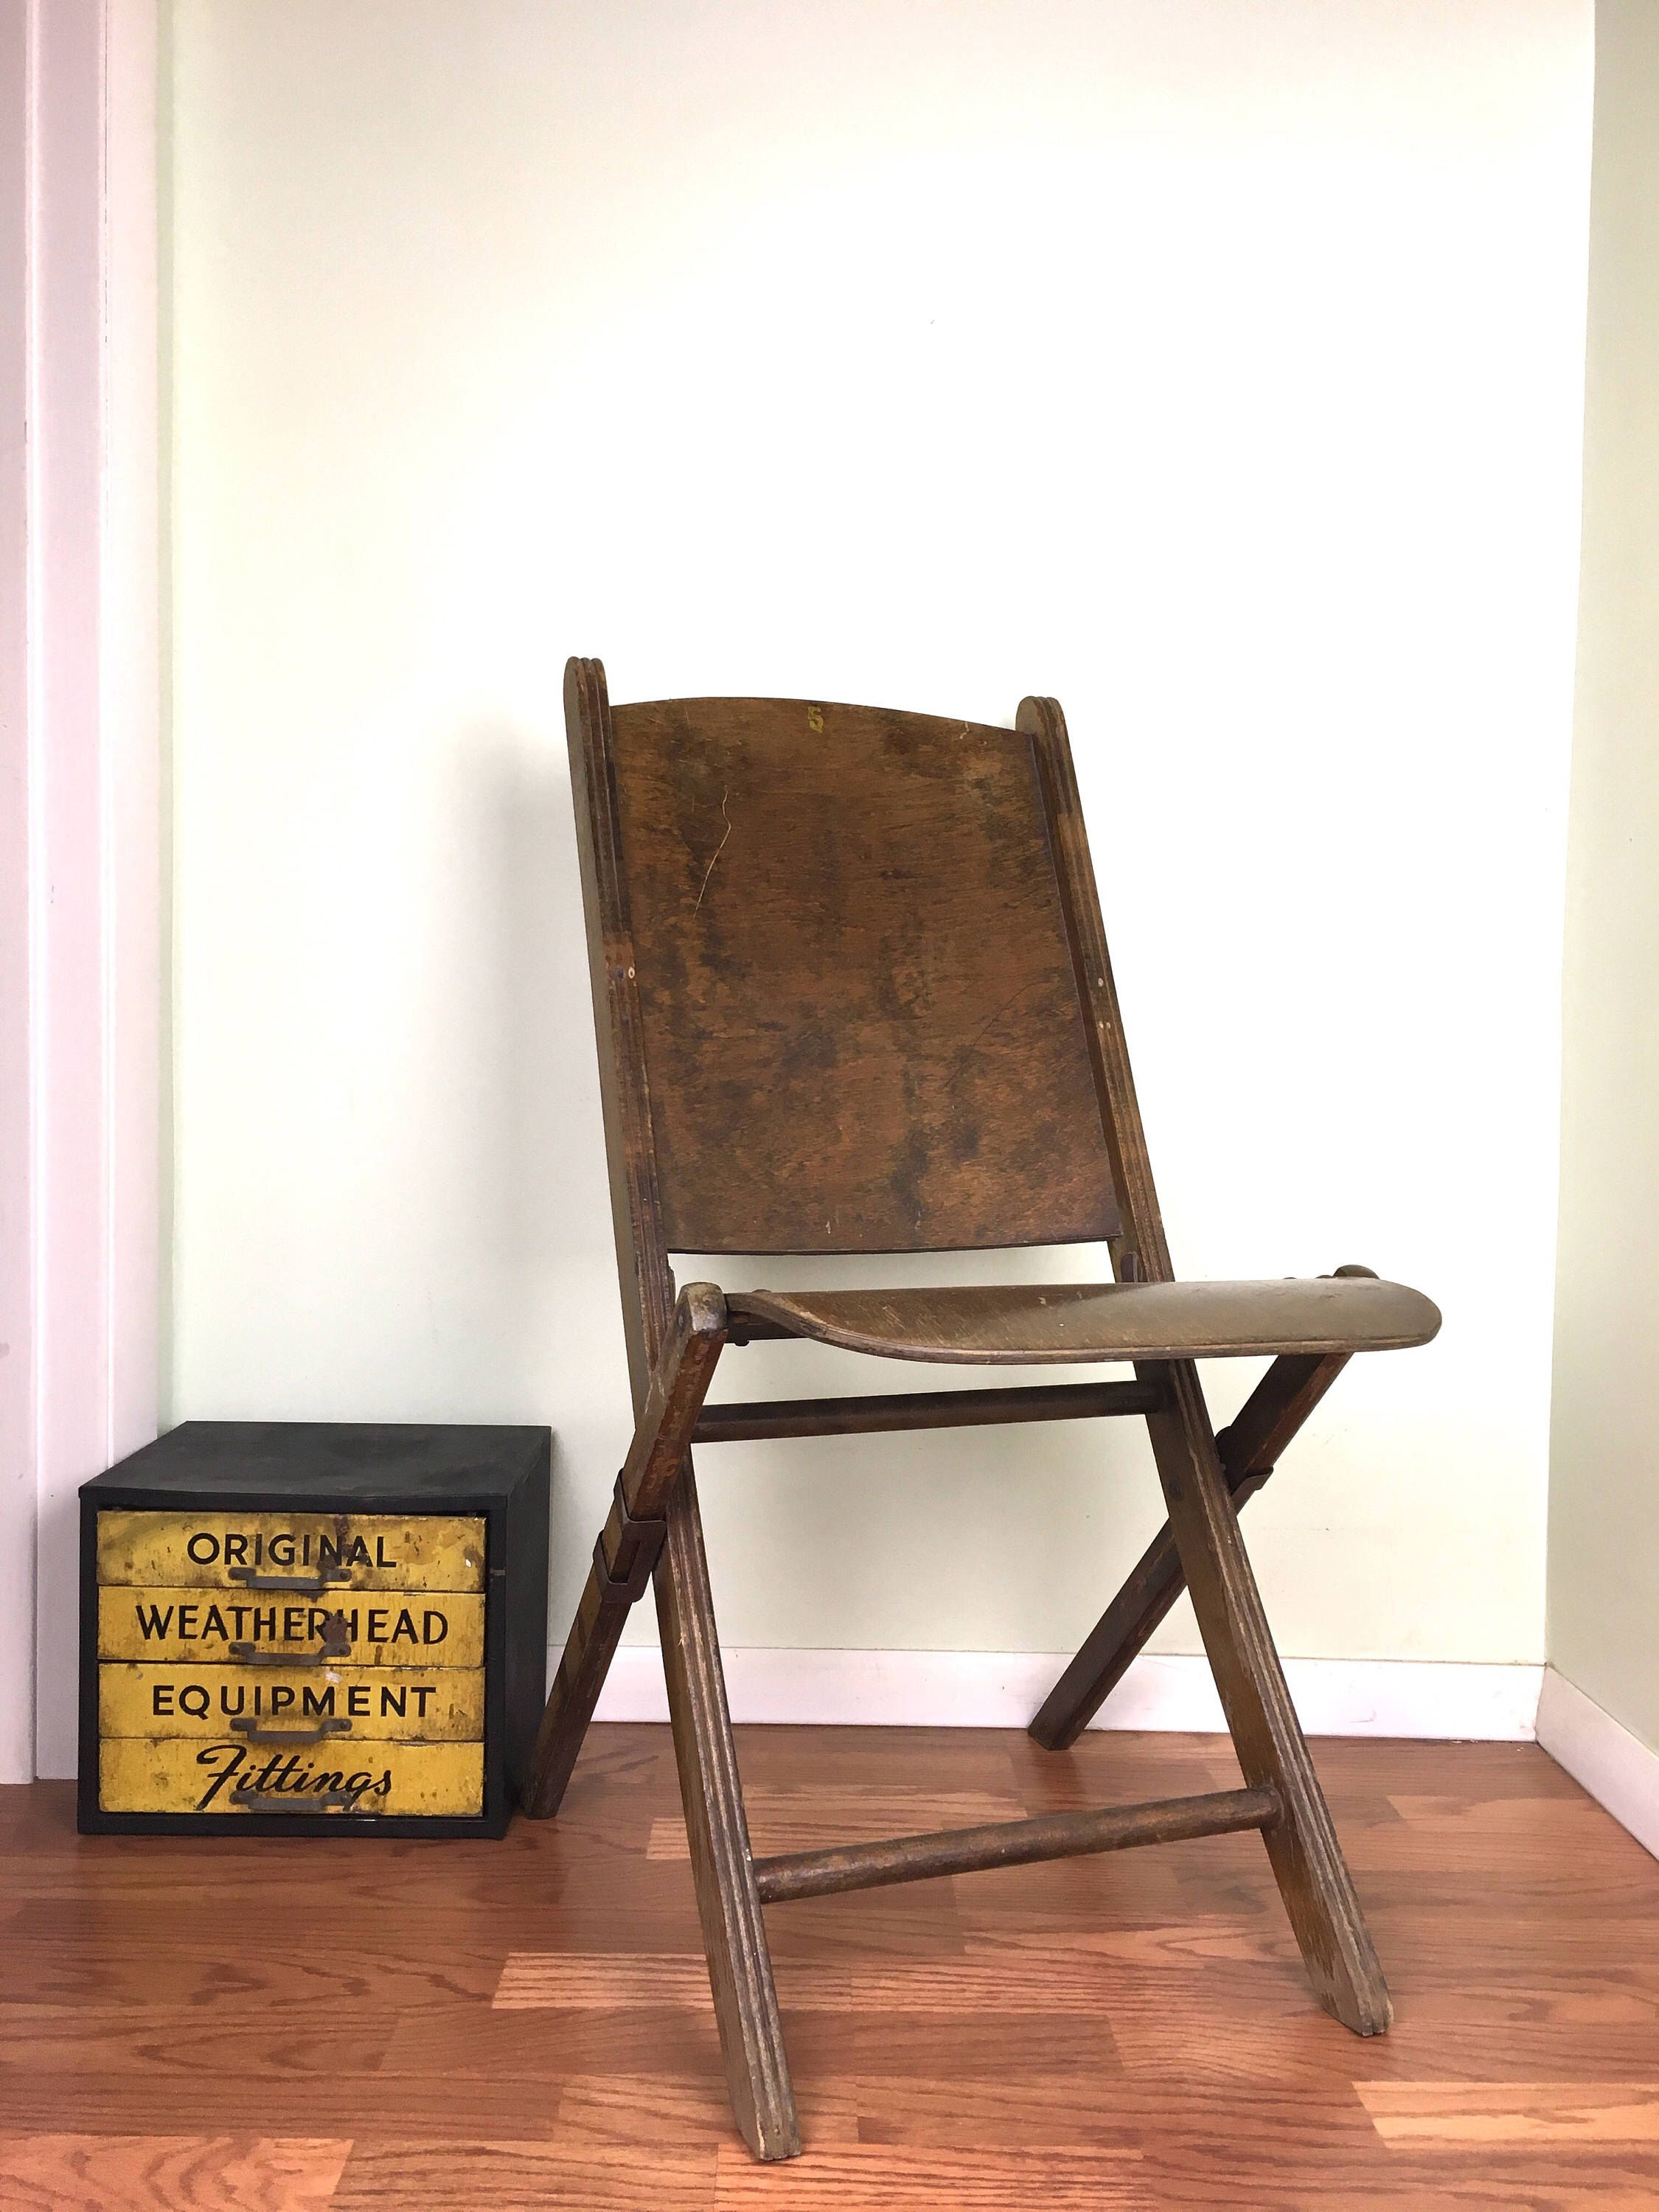 Antique Wood Folding Chair Early Wooden Picnic Chair 1930s Wood Theatre Style  Folding Chair   Vintage   Pinterest   Antiques, Chair And Folding Chair